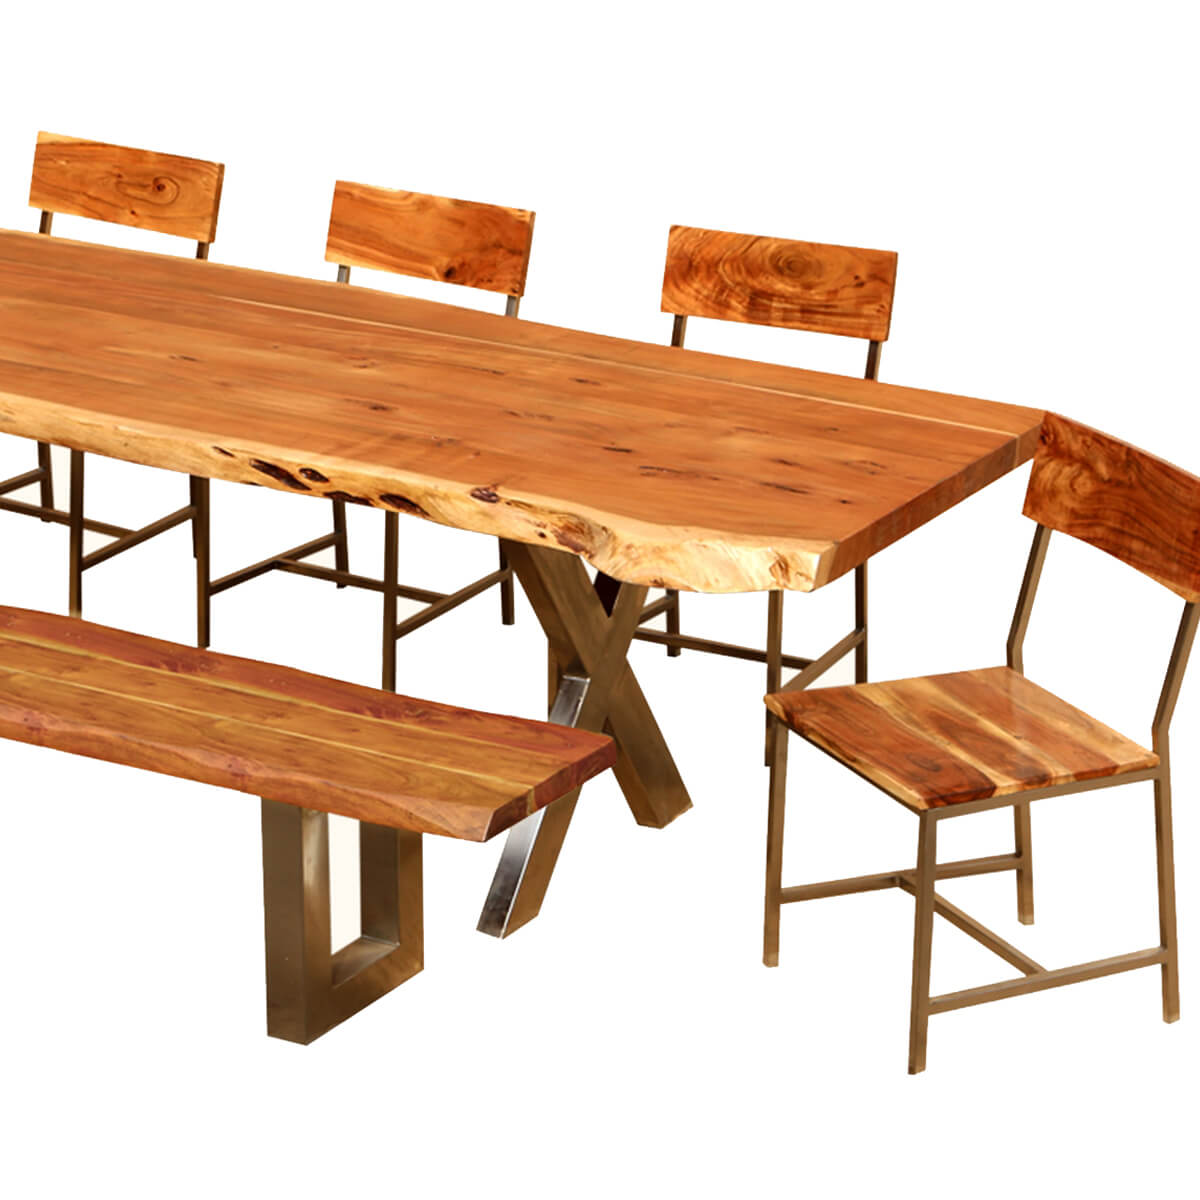 "Live Edge Acacia Wood & Iron 106"" Dining Table w 5 Chairs ..."